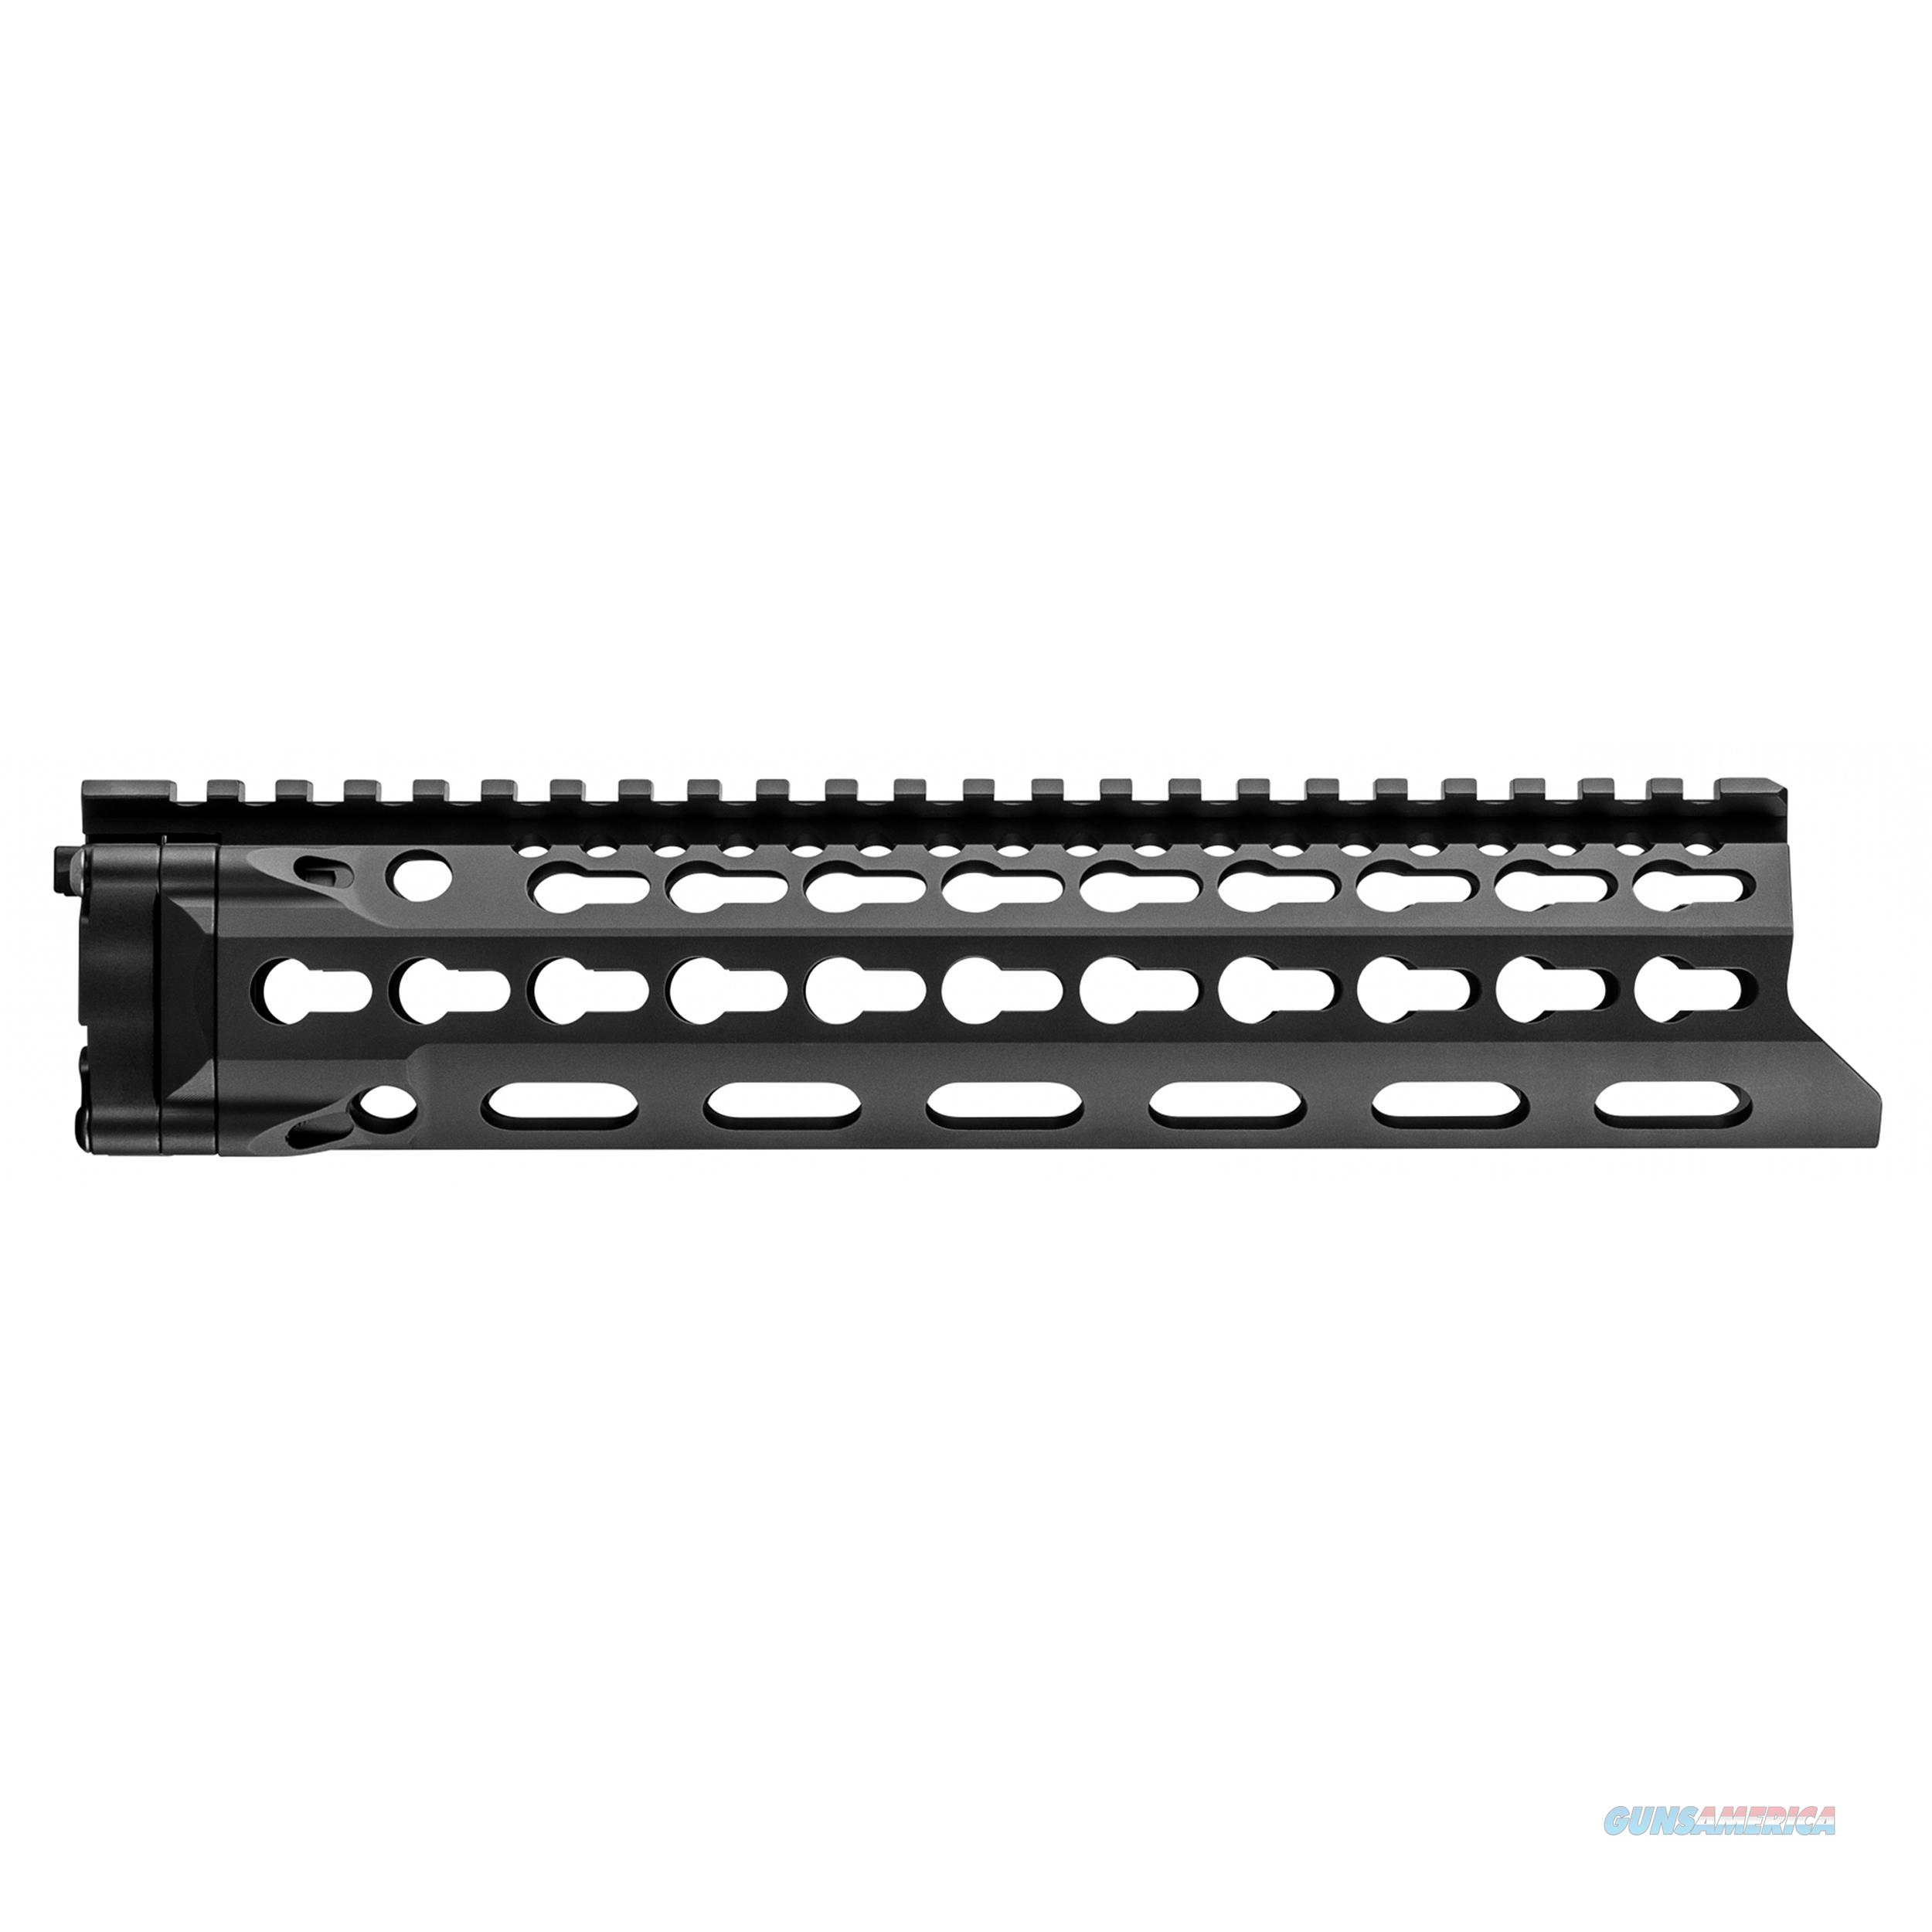 "Daniel Defense Mfr Xl Keymod Rail. 10"", Black 01-107-01203  Non-Guns > Gun Parts > Tactical Rails (Non-AR)"